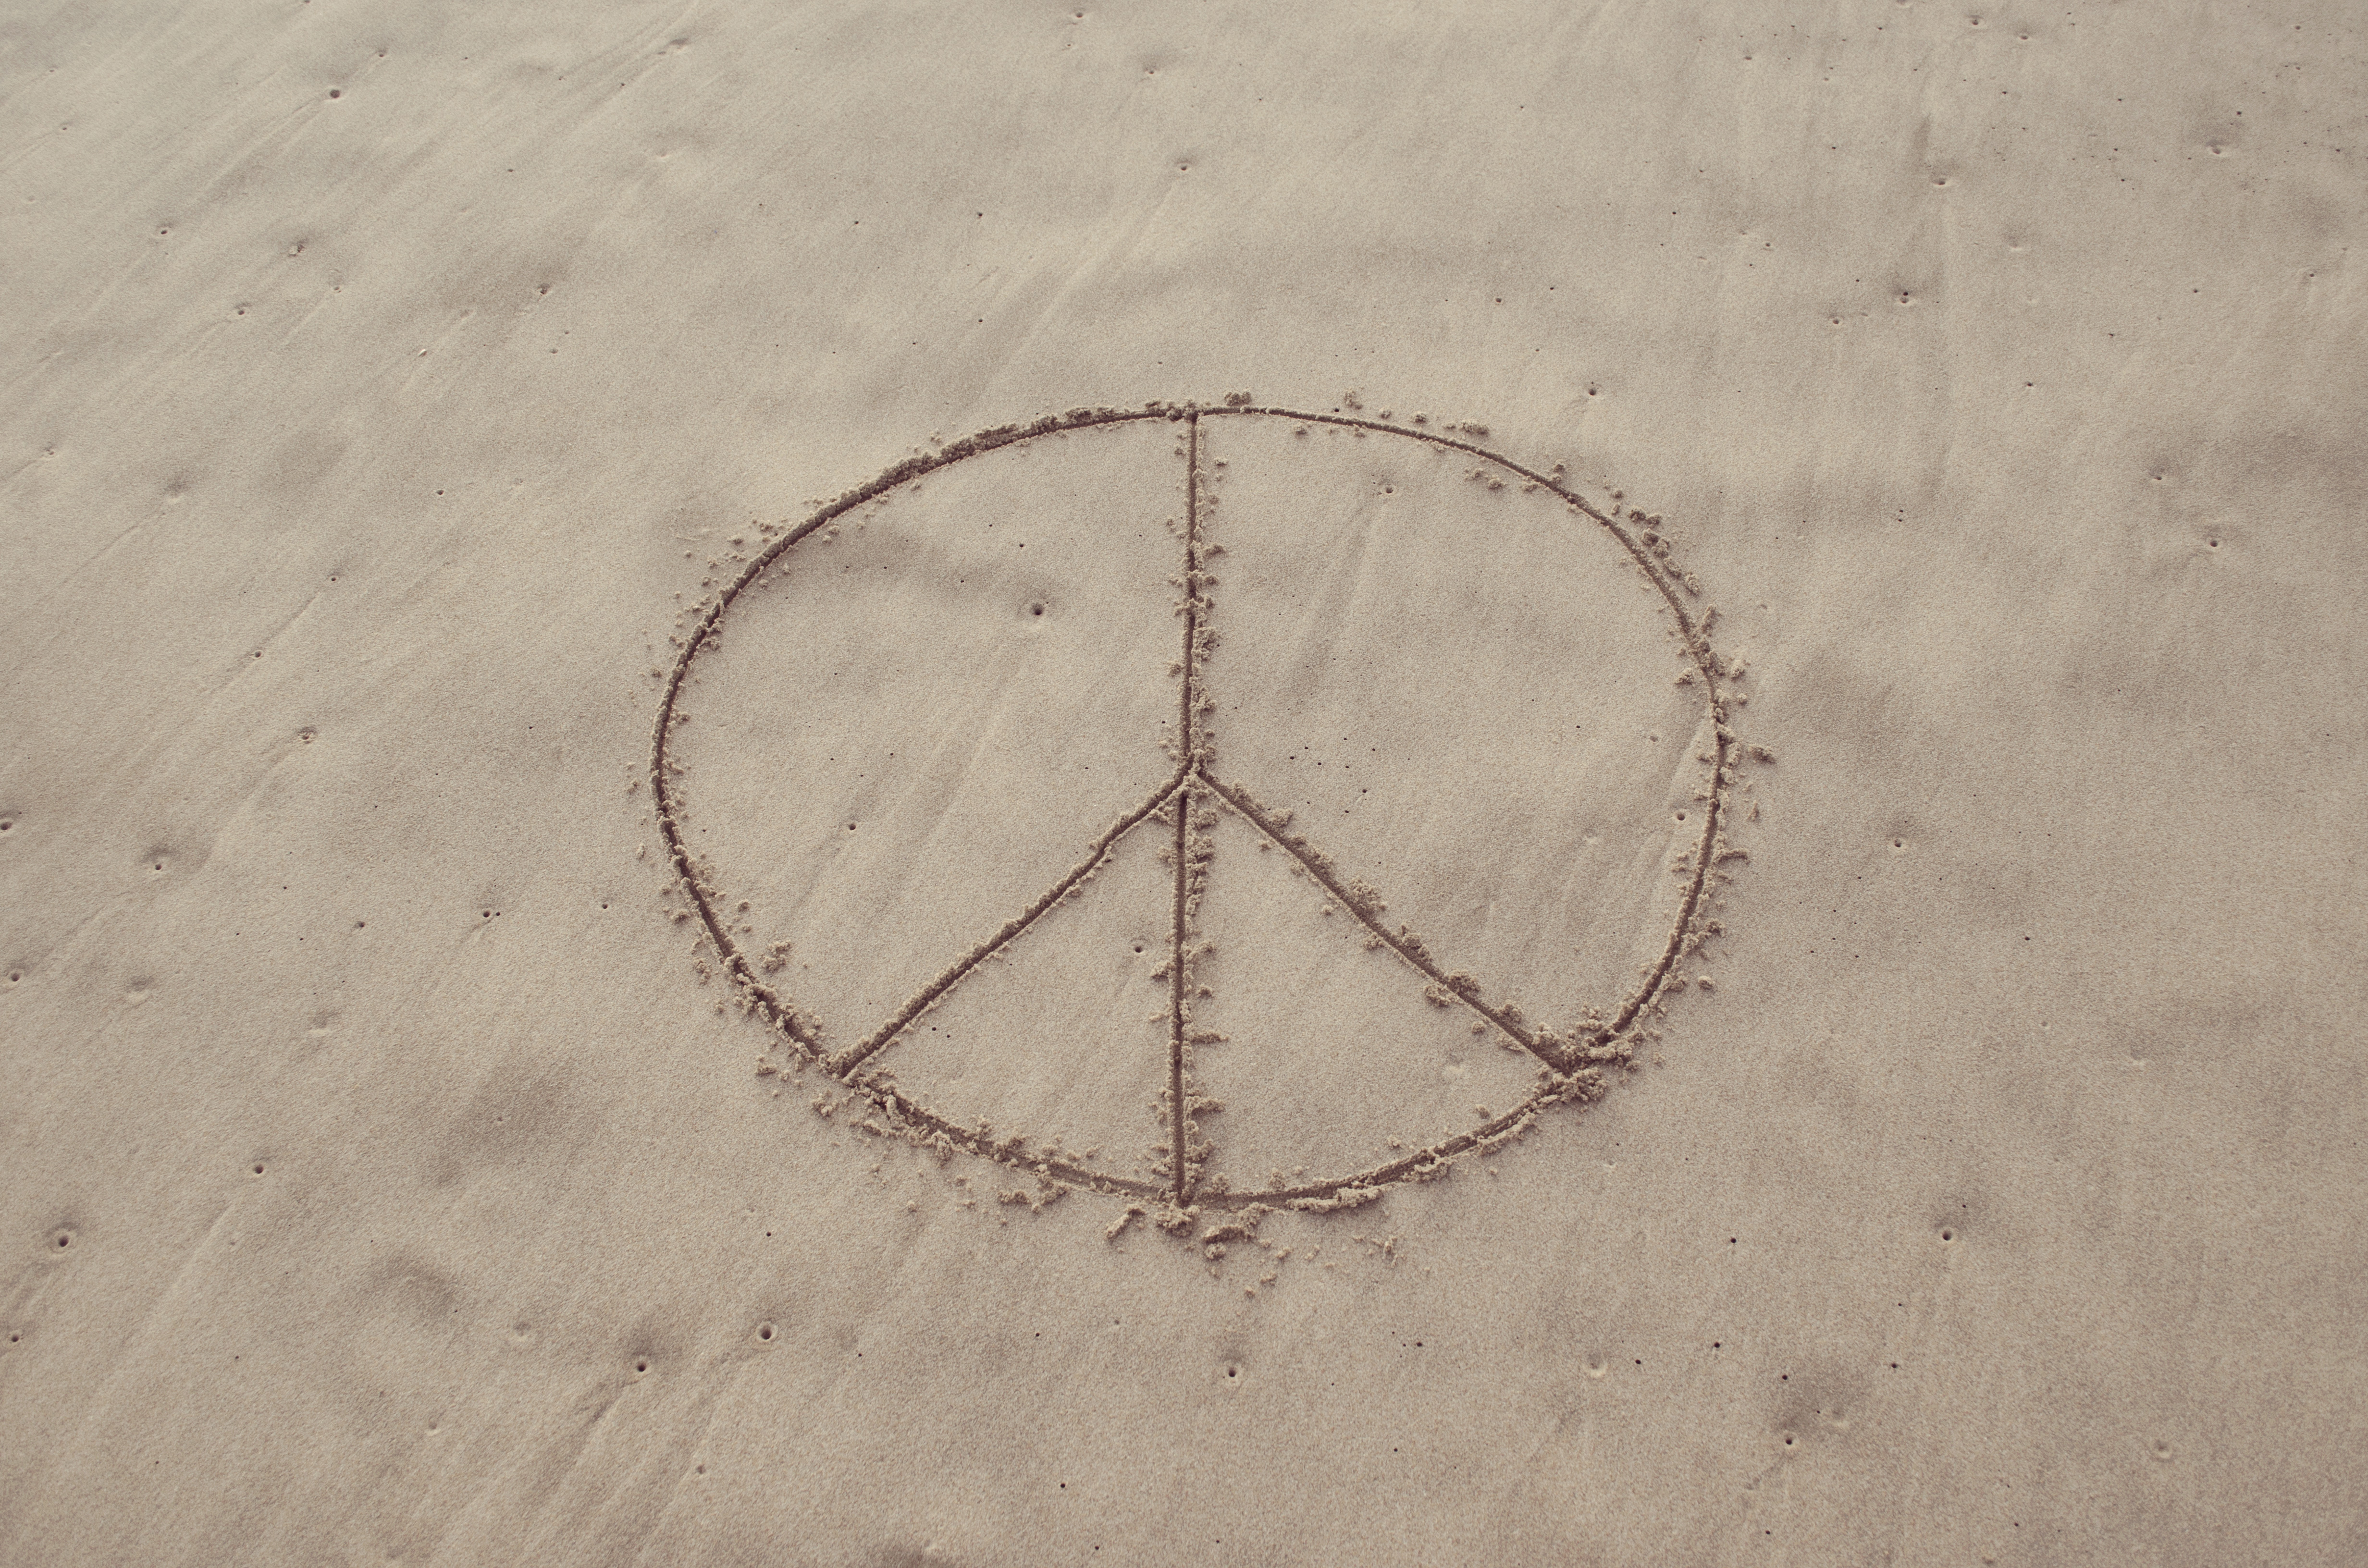 Drawn peace sign sand Prezo Archives Sign Drawn in